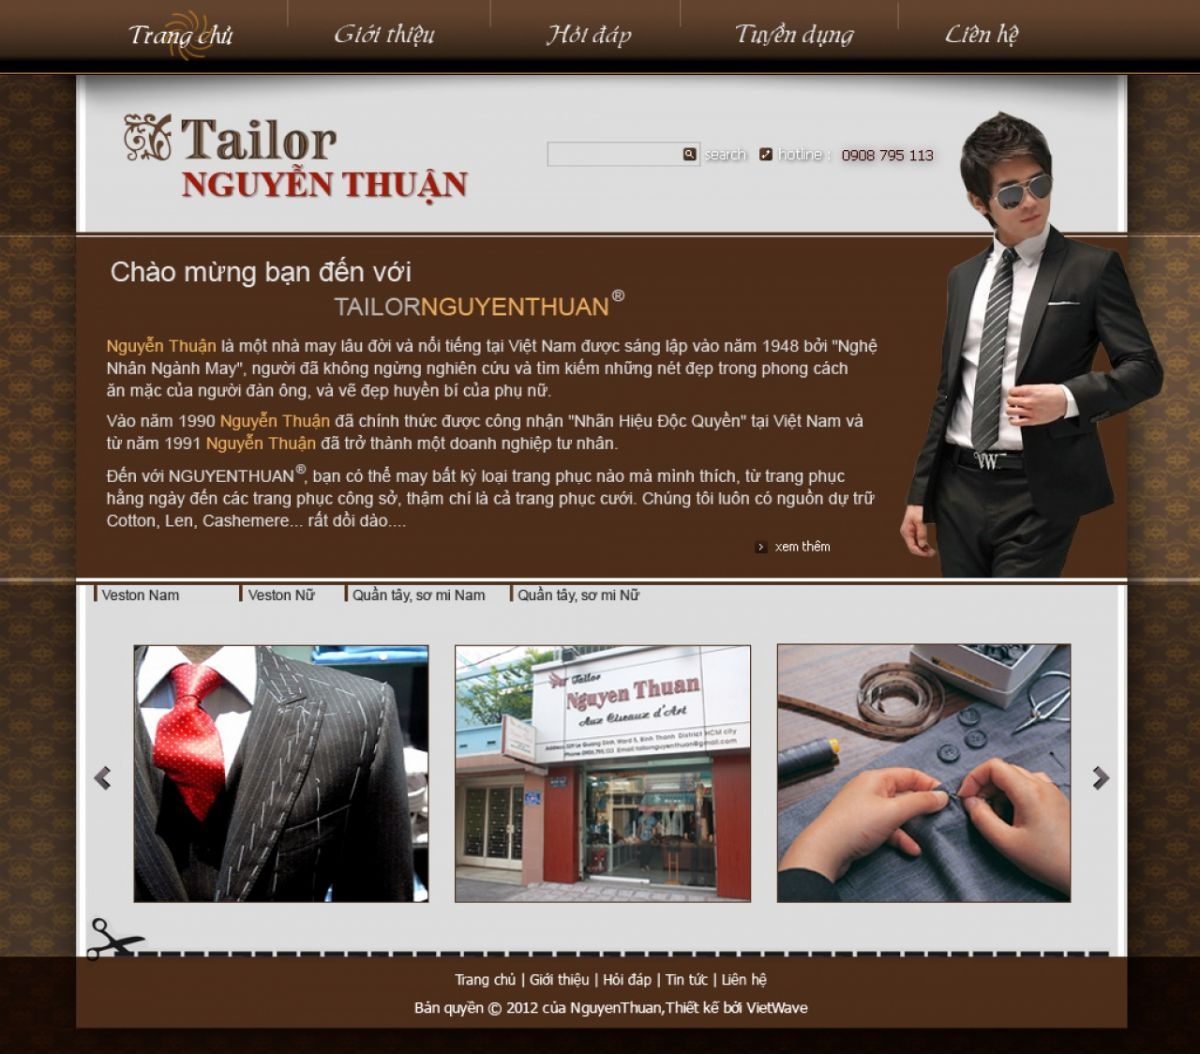 TAILOR NGUYỄN THUẬN